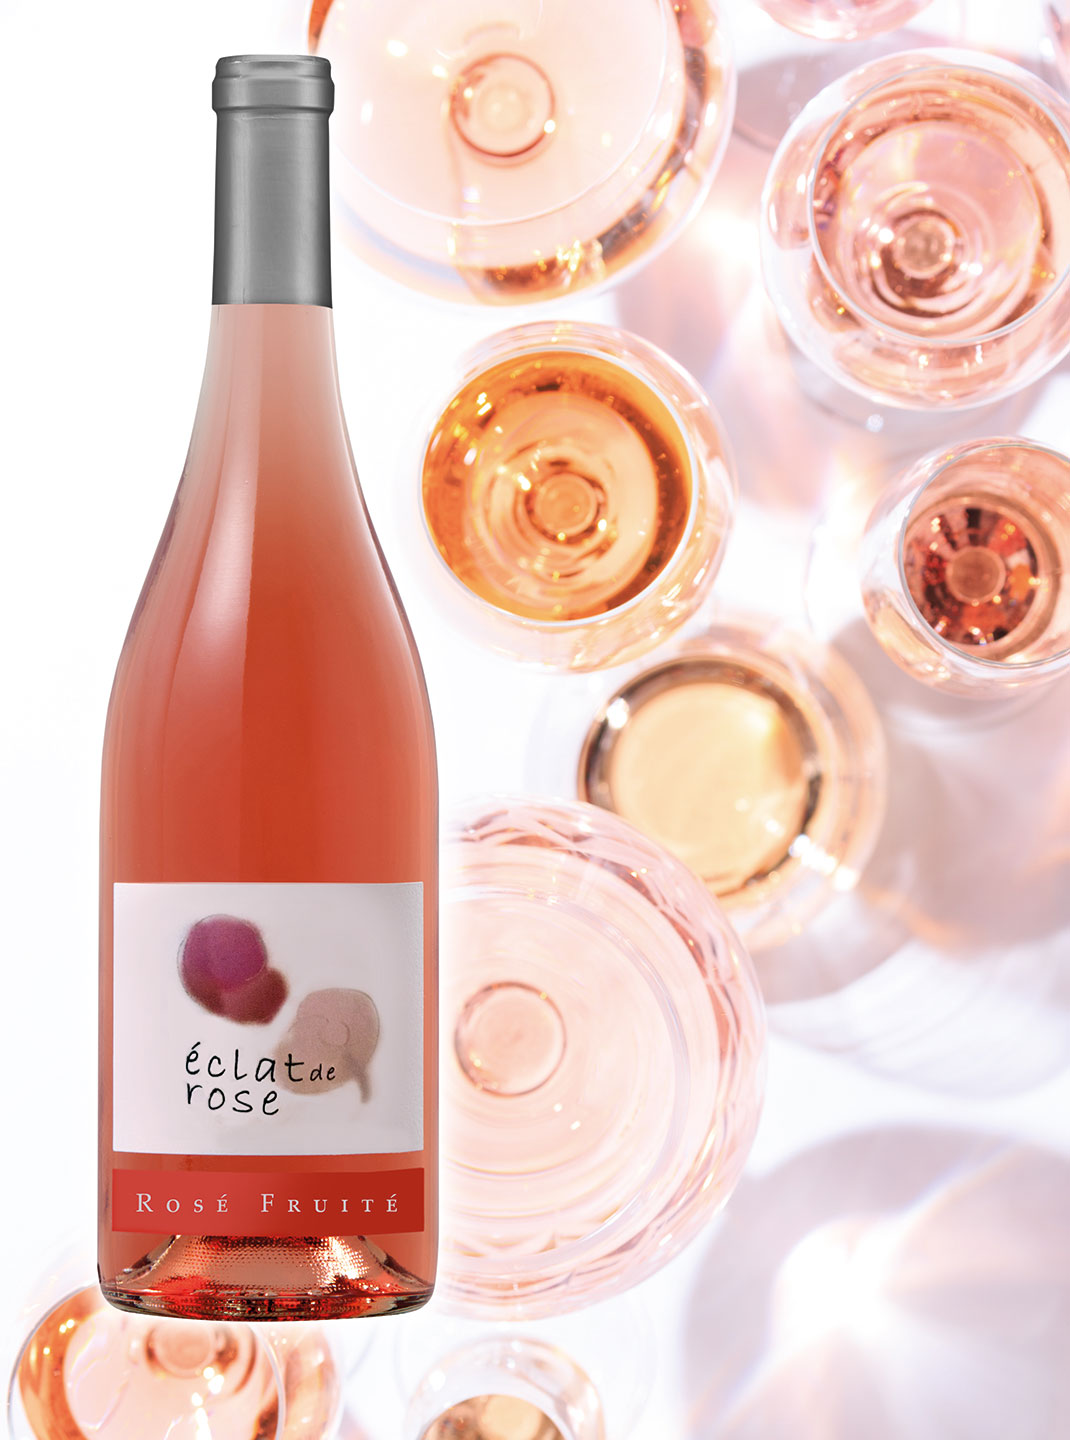 Wine of the Month, Eclat de Rose, available at Vu's Sky Bar and Lounge